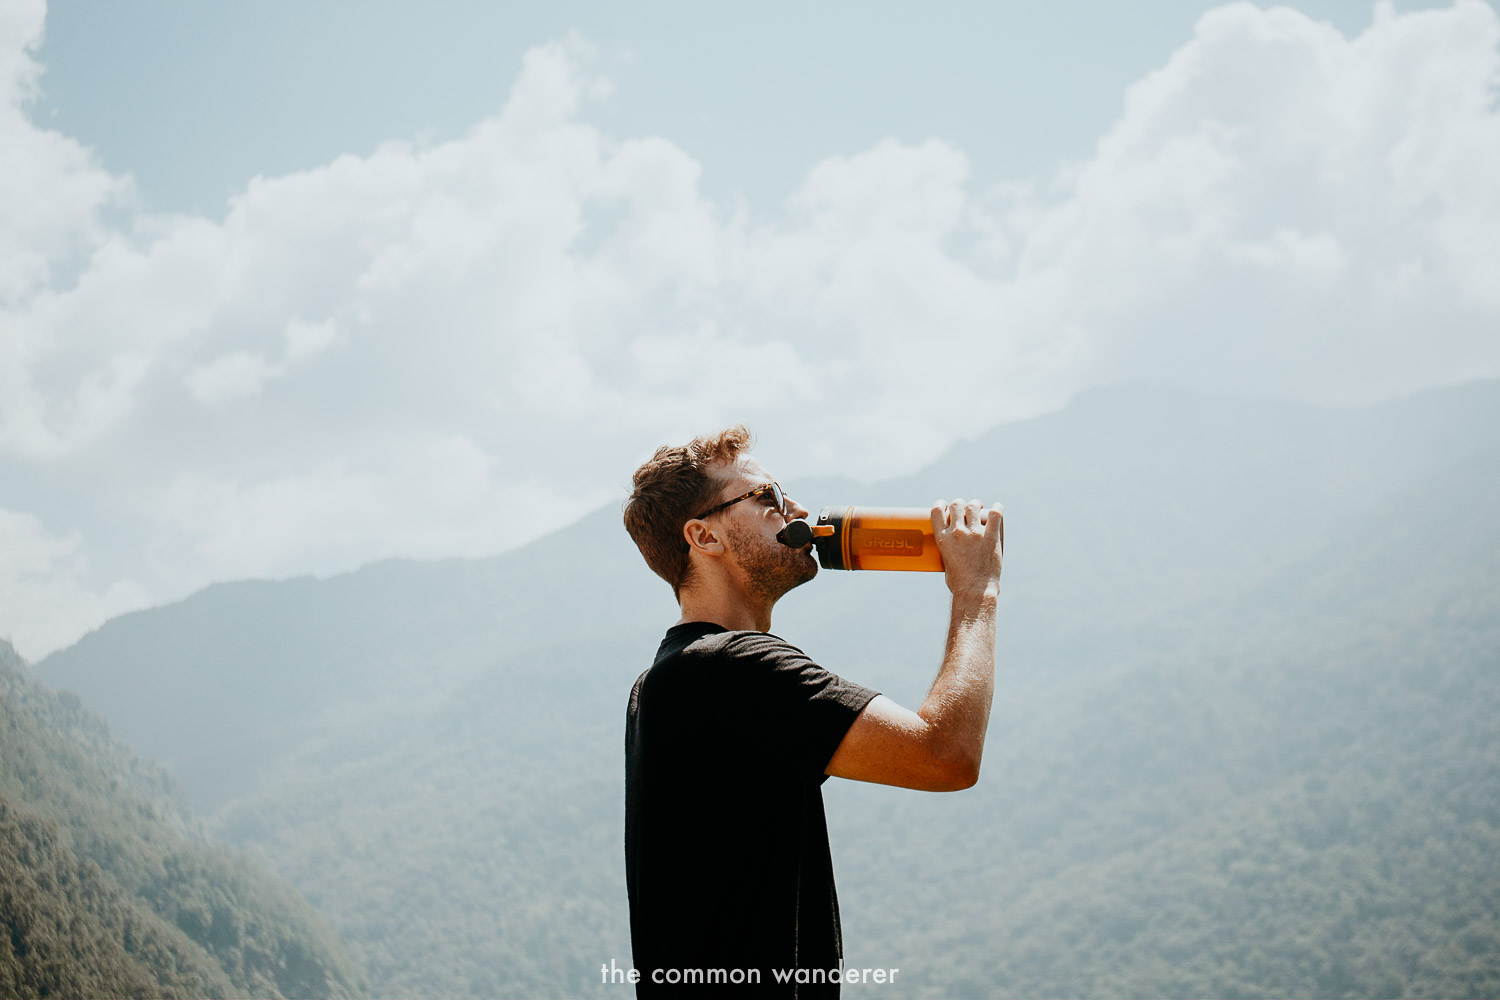 Drinking from the Grayl bottle while hiking in Nepal